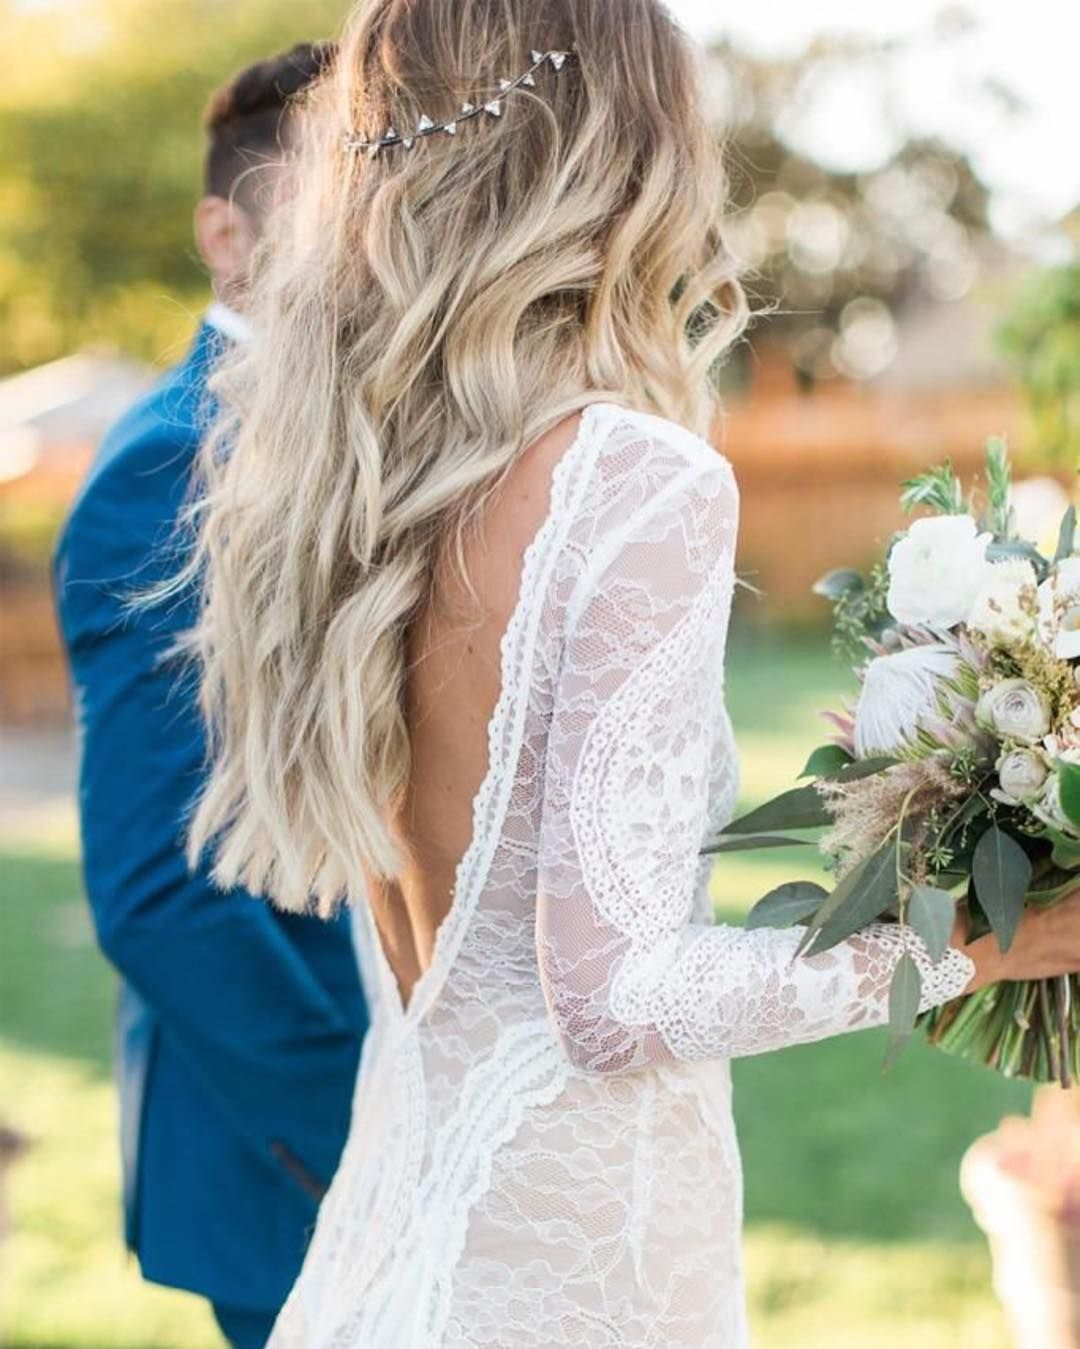 wedding hair + @grace_loves_lace inca gown combo for the win